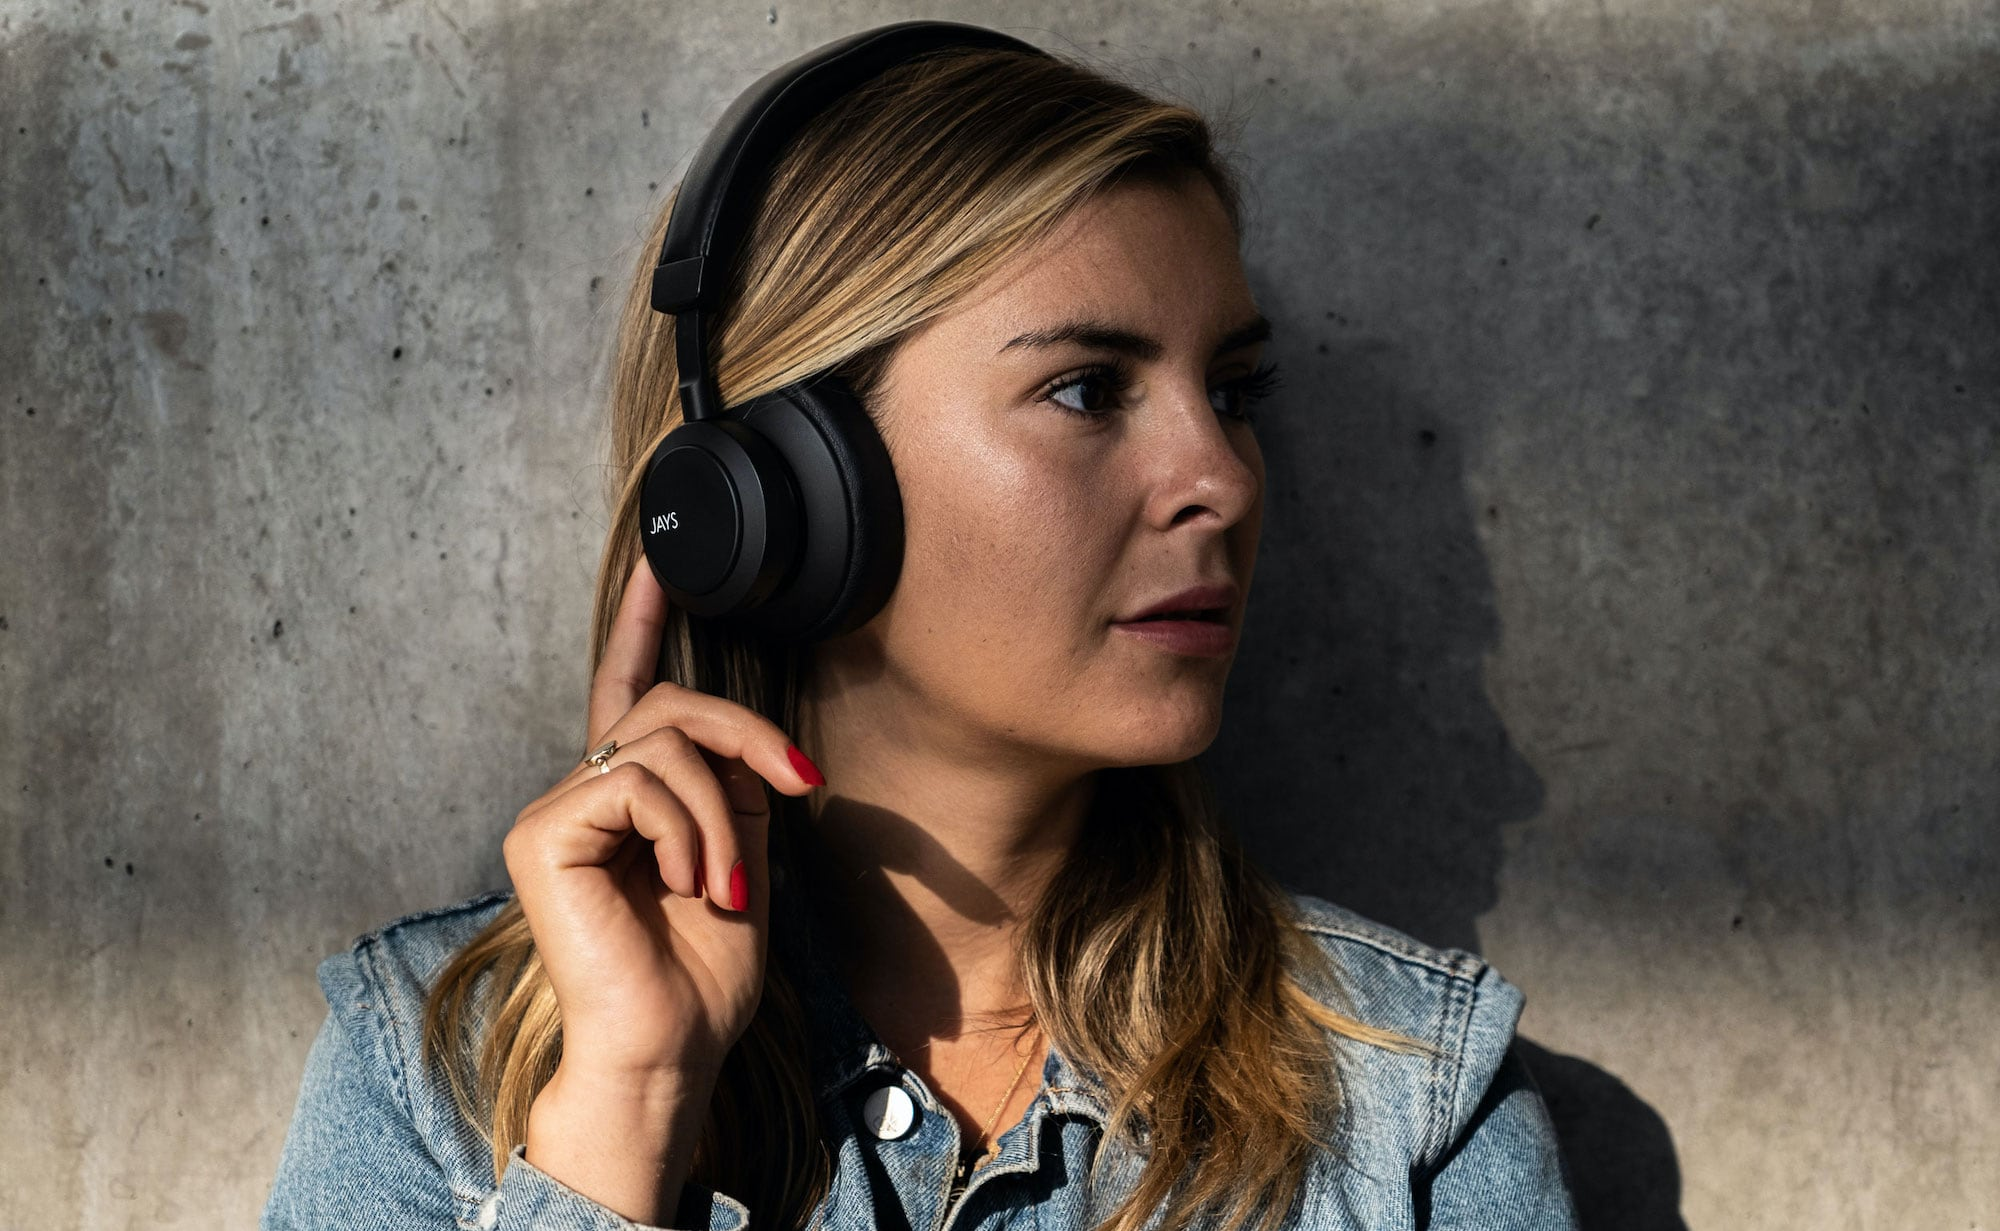 Jays q-Seven Wireless ANC Headphones provide 30 hours of playtime